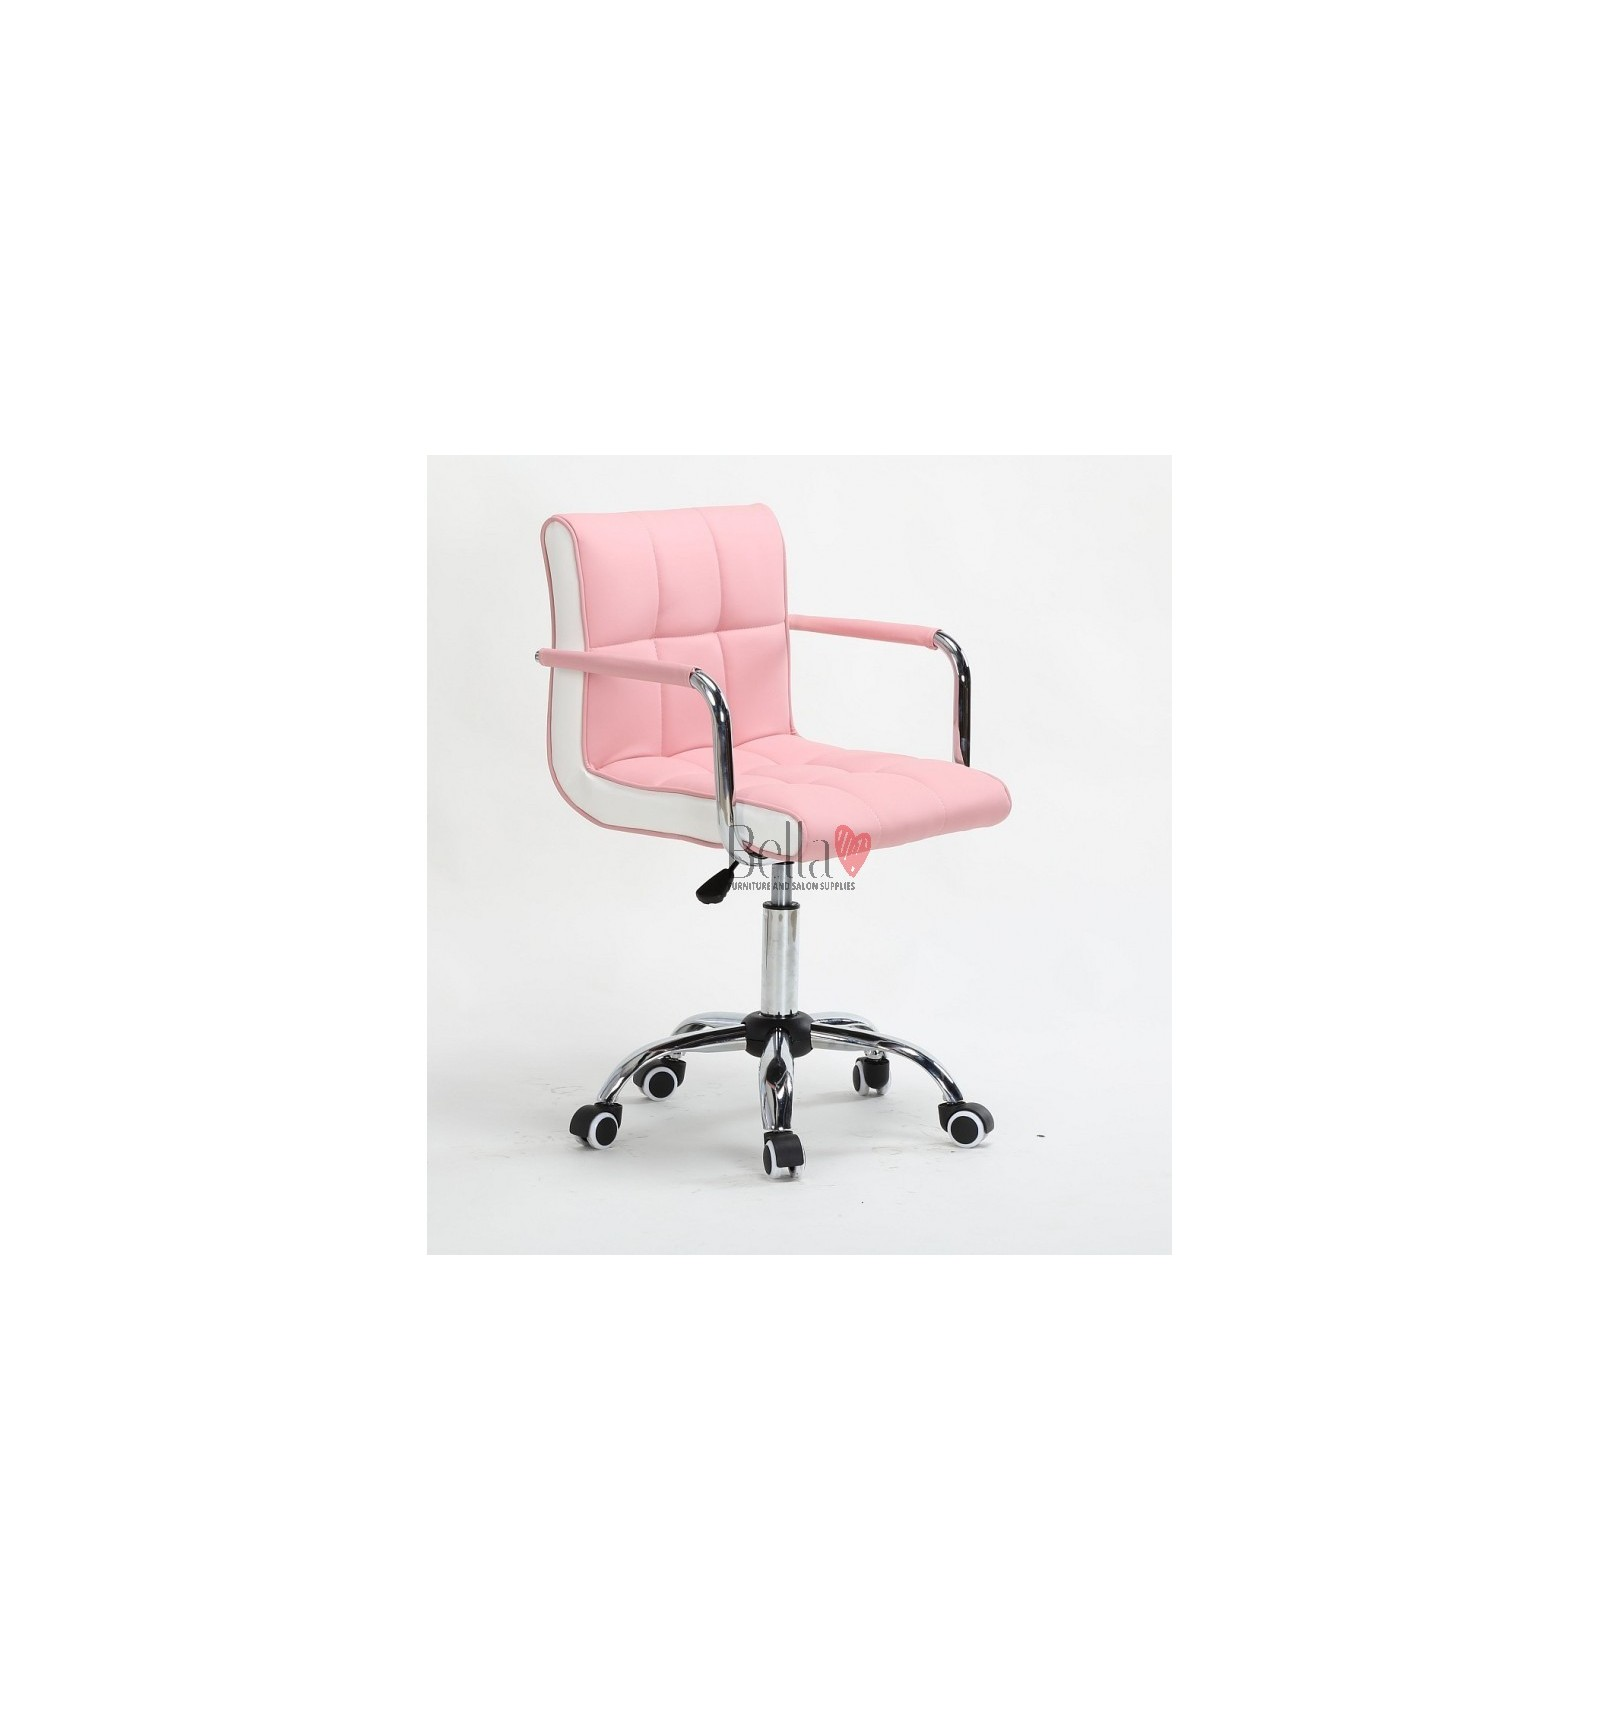 pink nail salon chairs leather club target for sale stylish salons dublin bella furniture on wheels in ireland